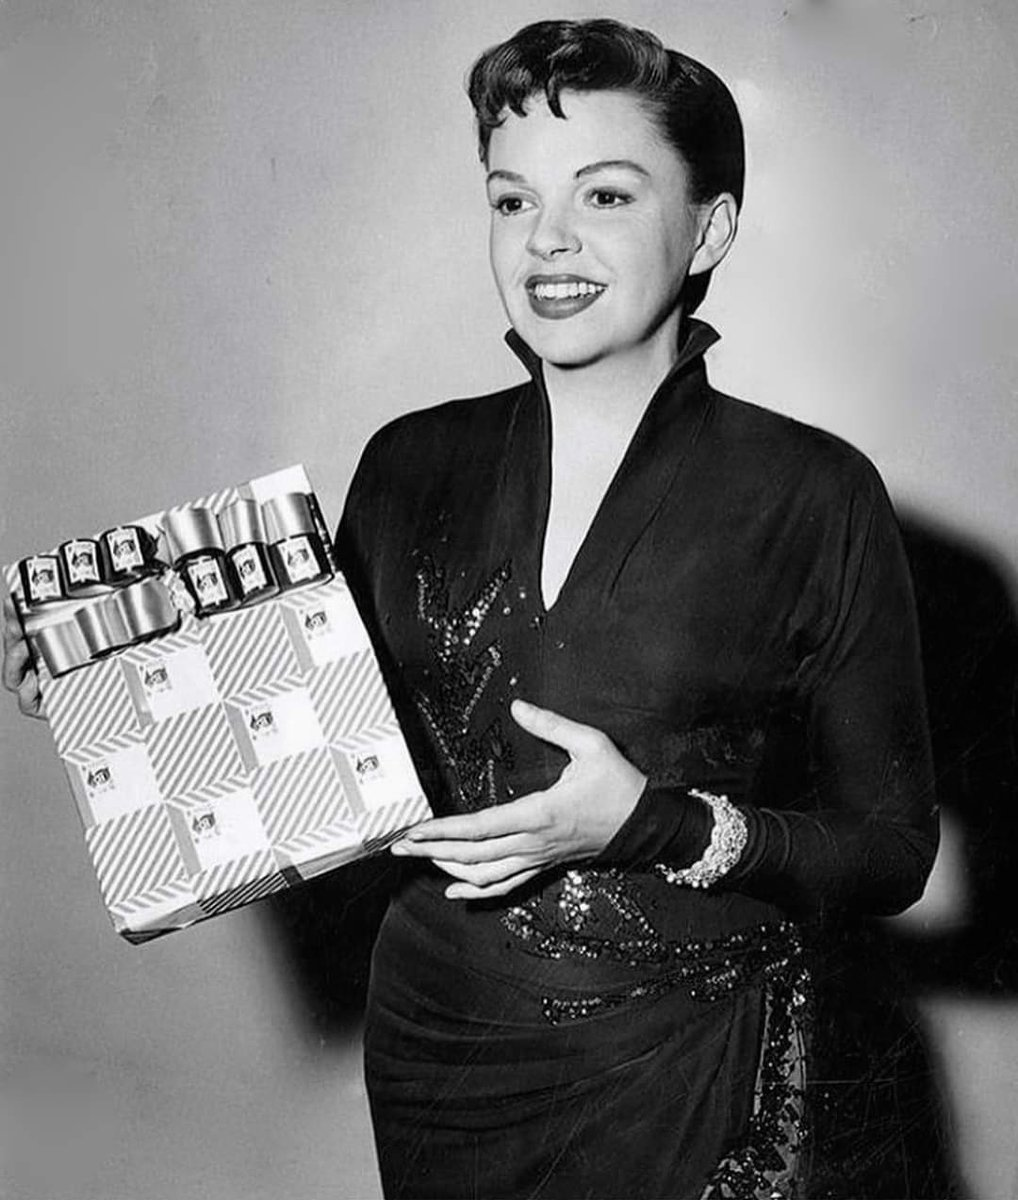 Judy Garland On Twitter This Photo Was Taken On December 22 1953 Judy Is Promoting Christmas Seals The Proceeds Went To The Los Angeles County Tuberculosis And Health Association For Their Anti Tb